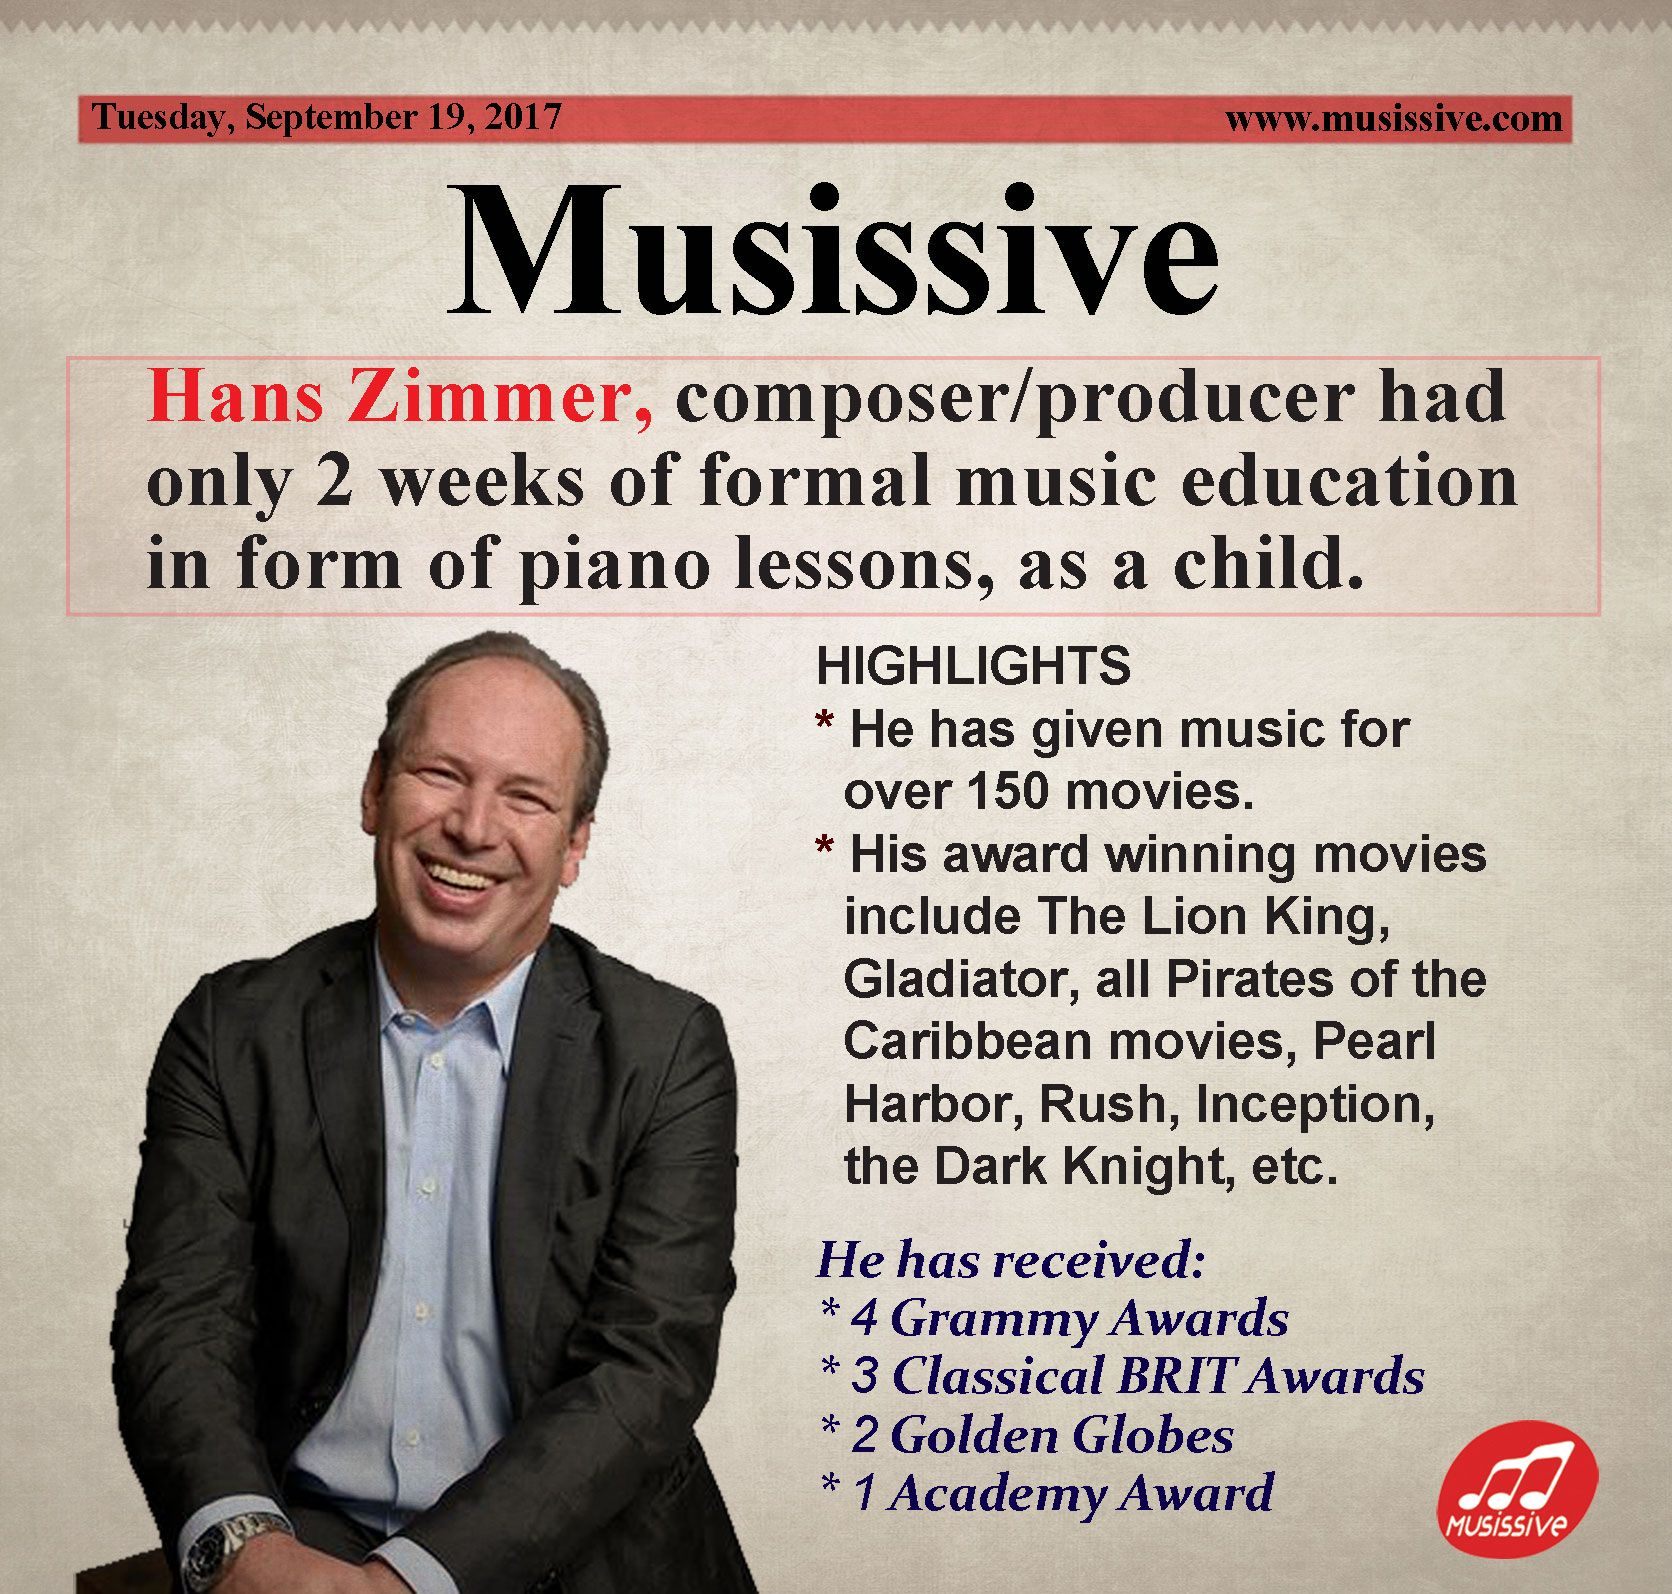 Hans Zimmer Composer Producer Had Only 2 Weeks Of Formal Music Education In Form Of Piano Lessons As A Child U Piano Lessons Teaching Music Music Education